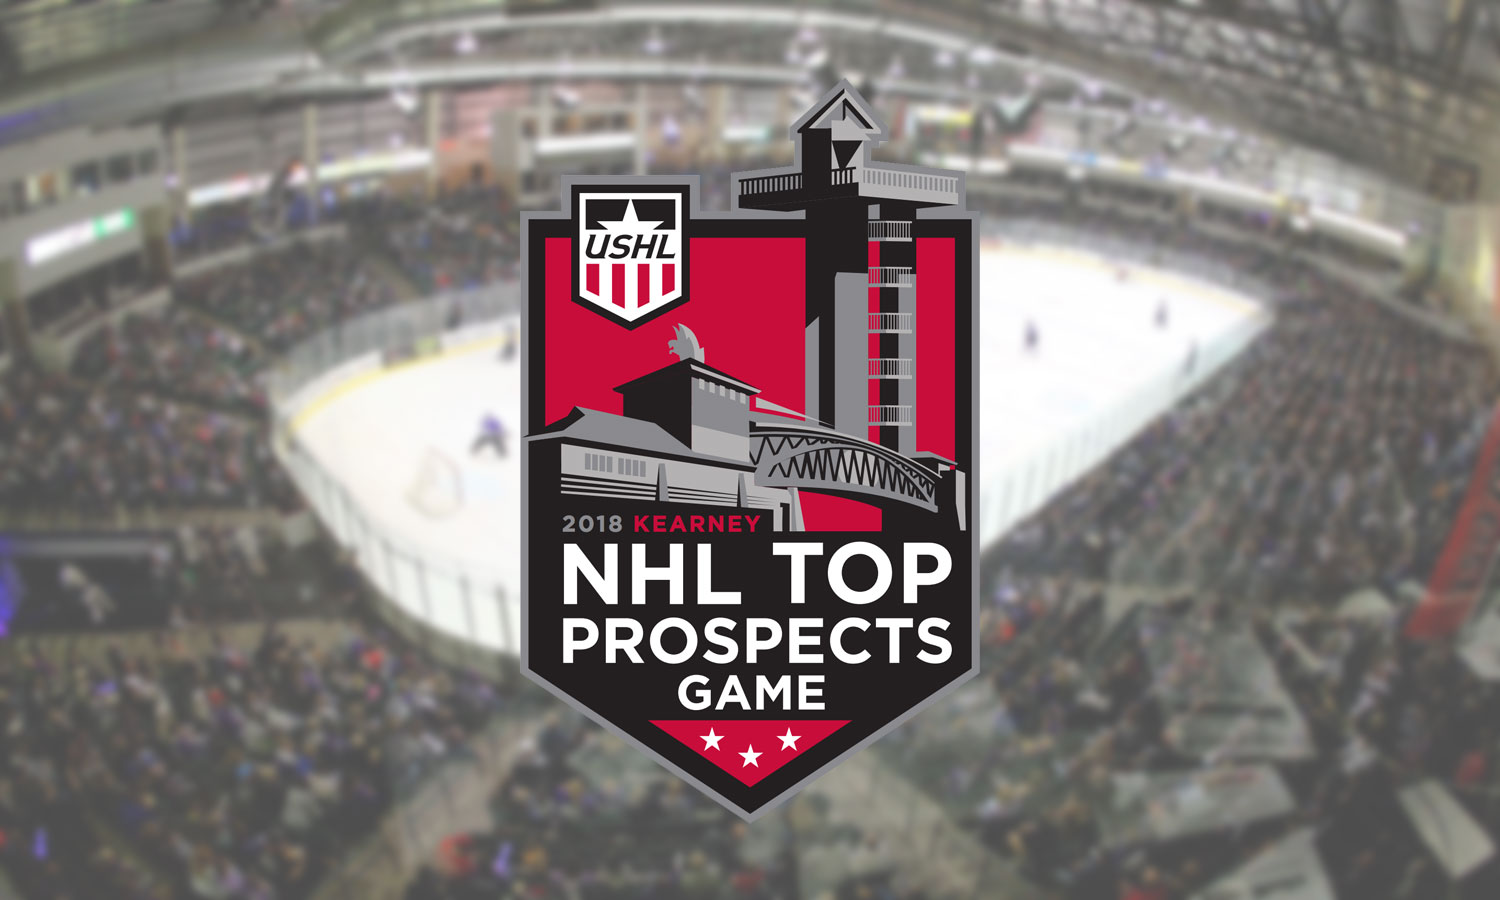 USHL: 2018 Top Prospects Game Rosters Announced